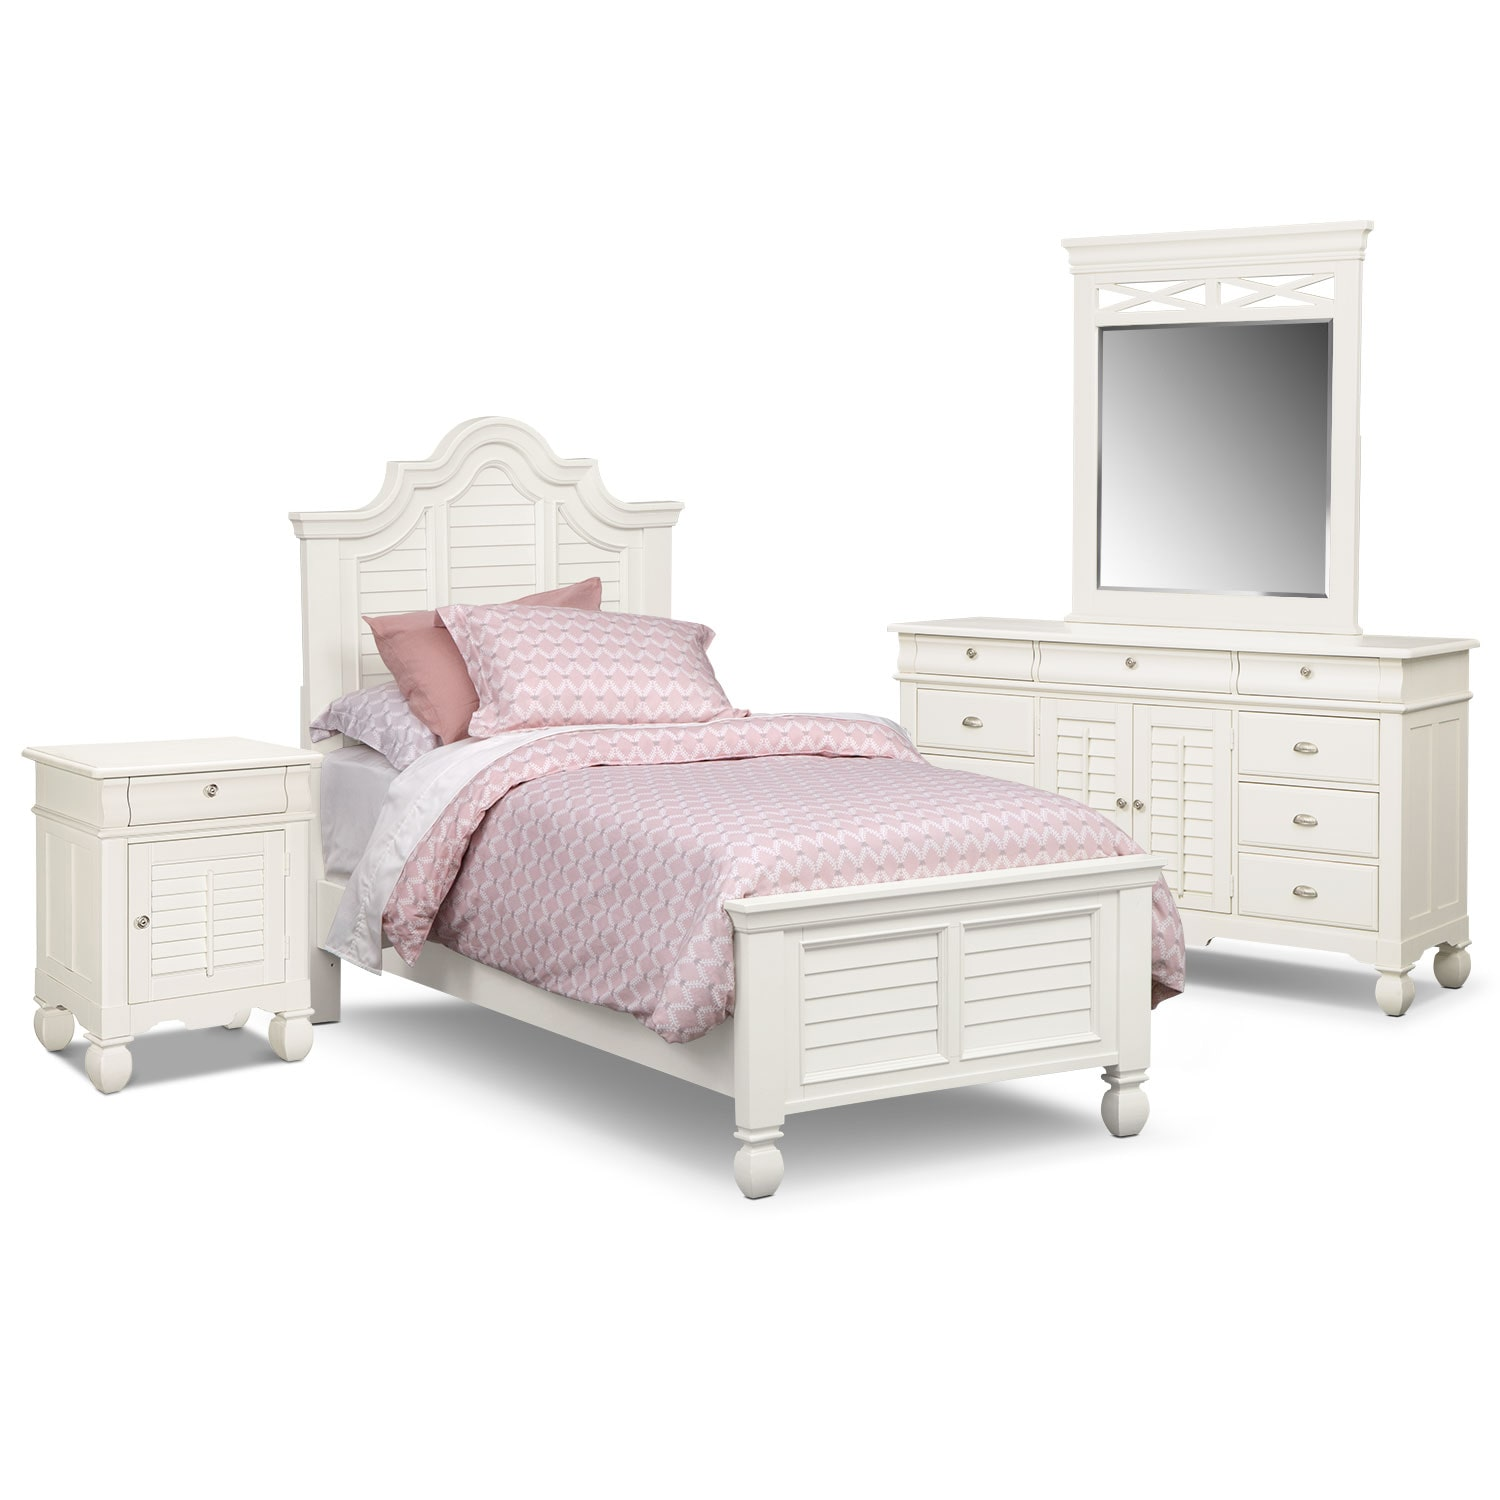 Bedroom Furniture - Plantation Cove 6-Piece Full Bedroom Set with Door Nightstand - White